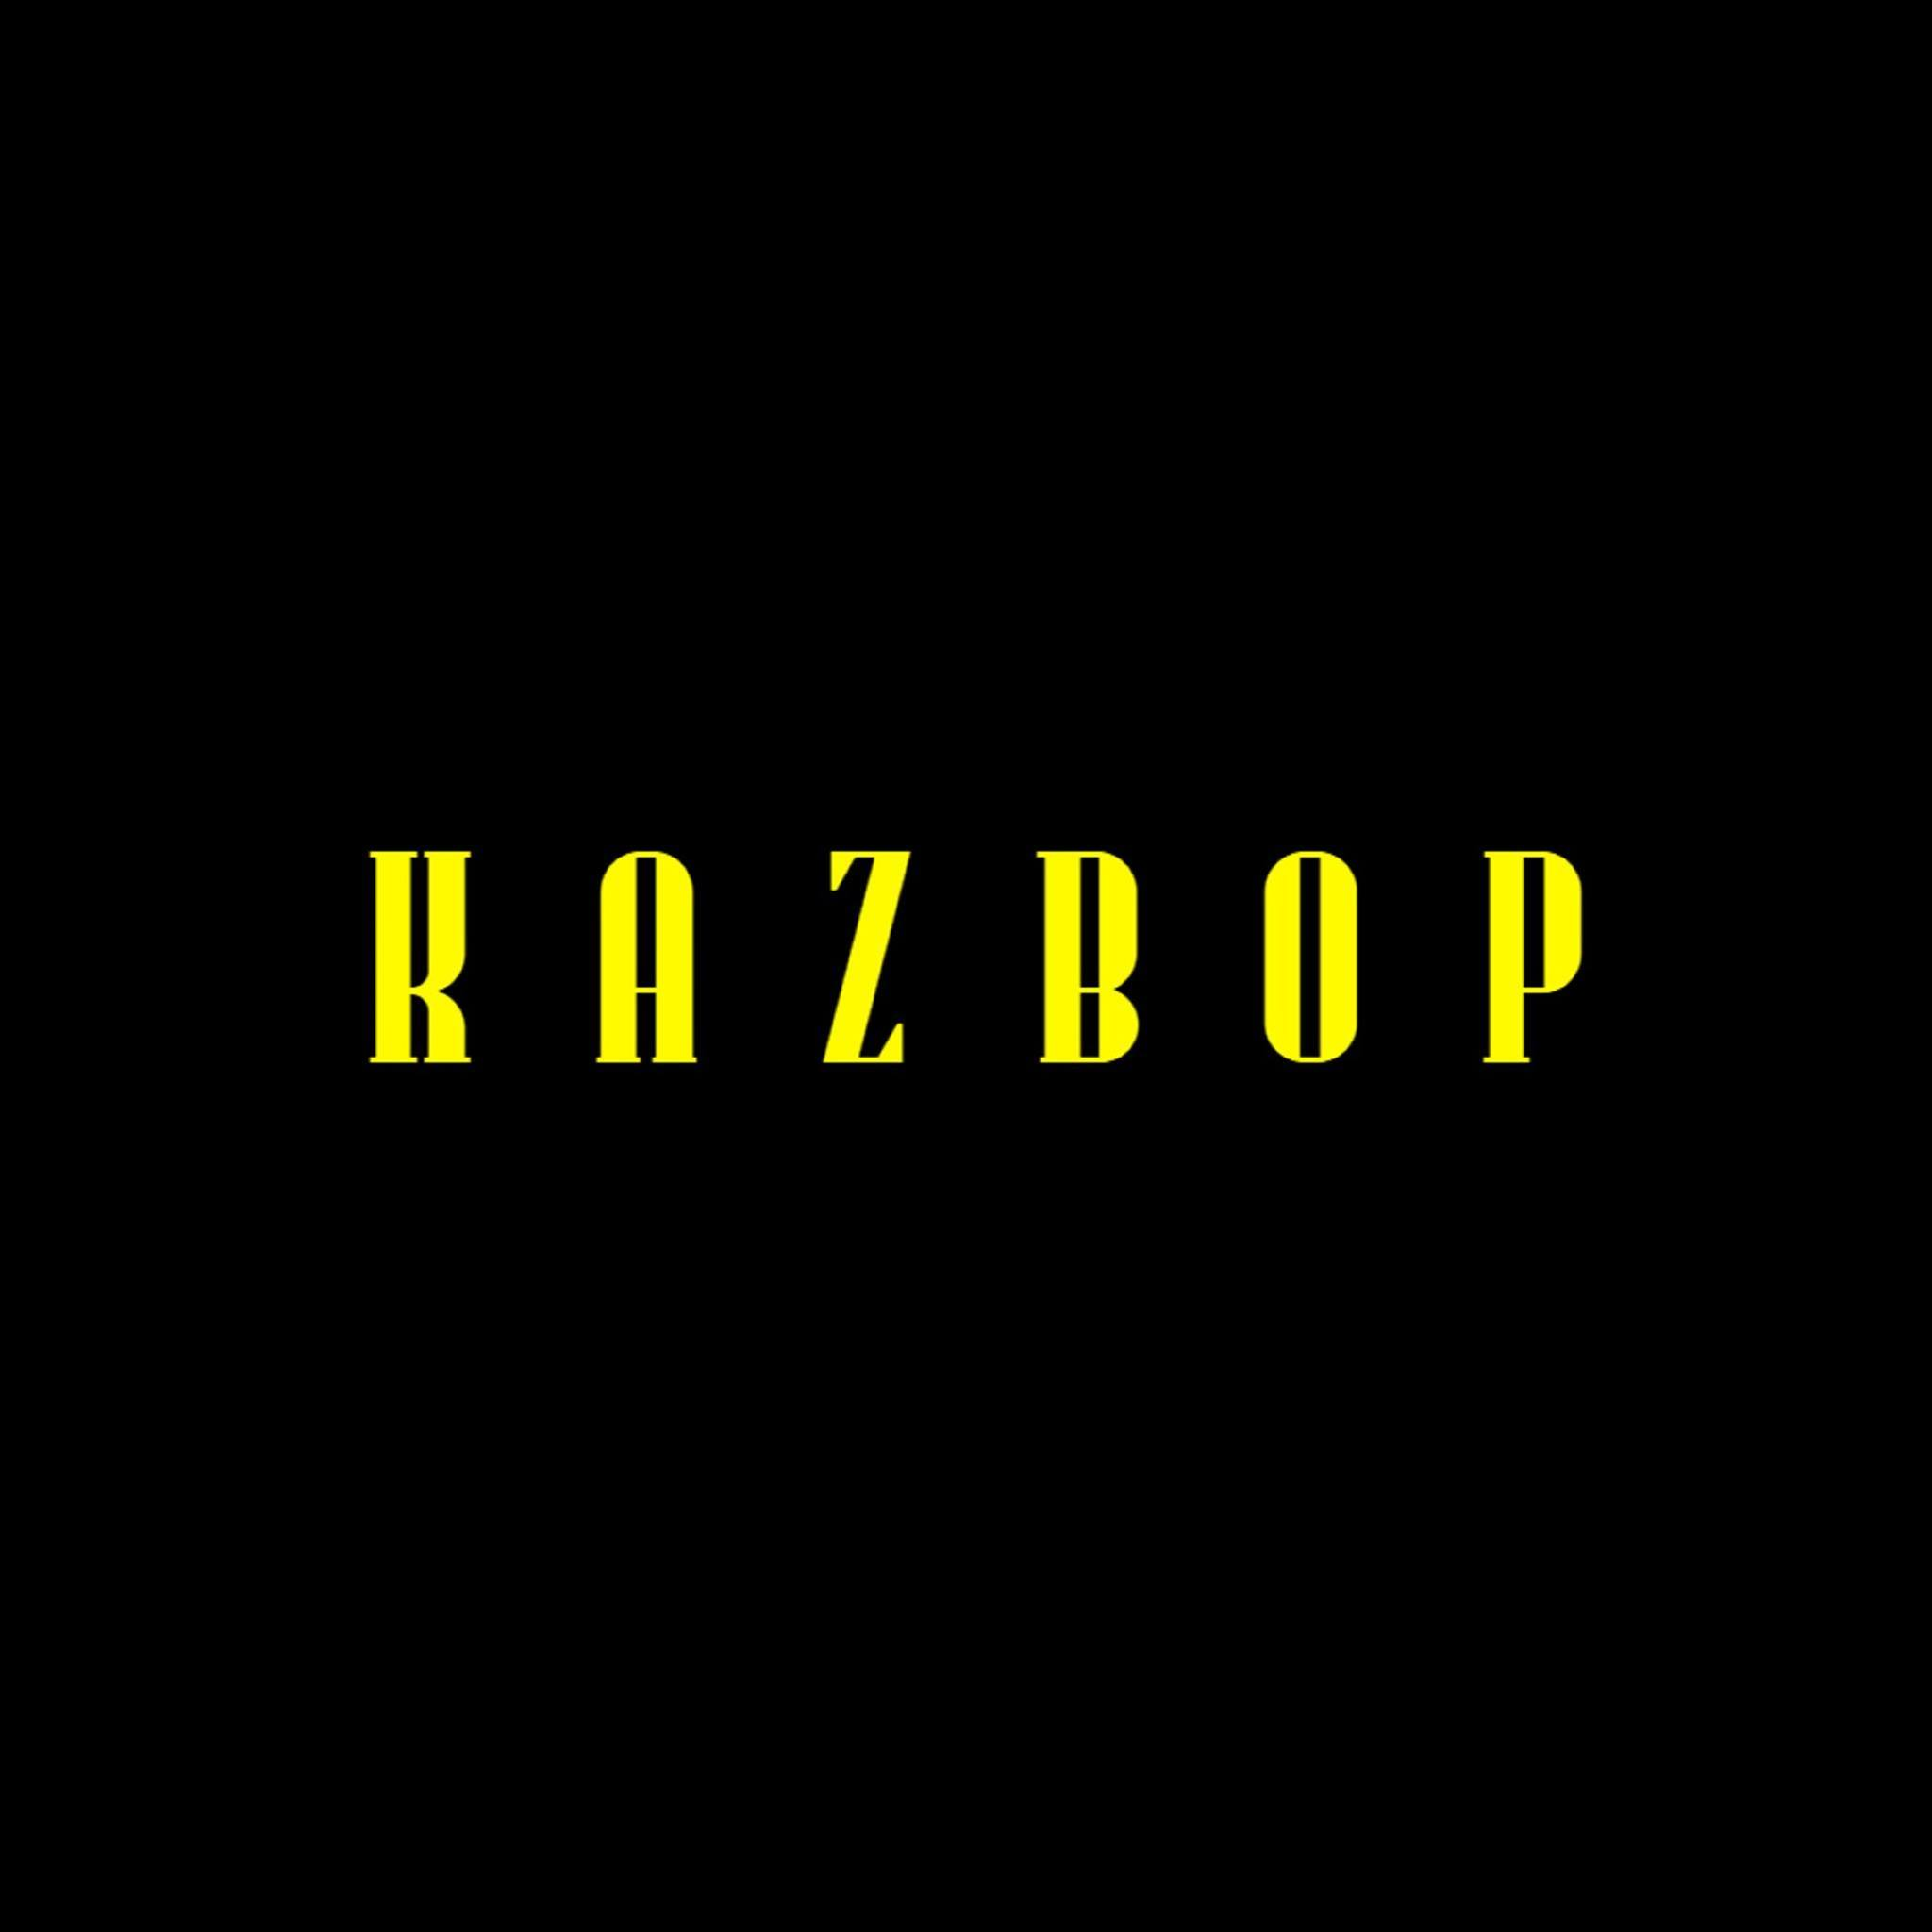 Keep In Family - KazBop